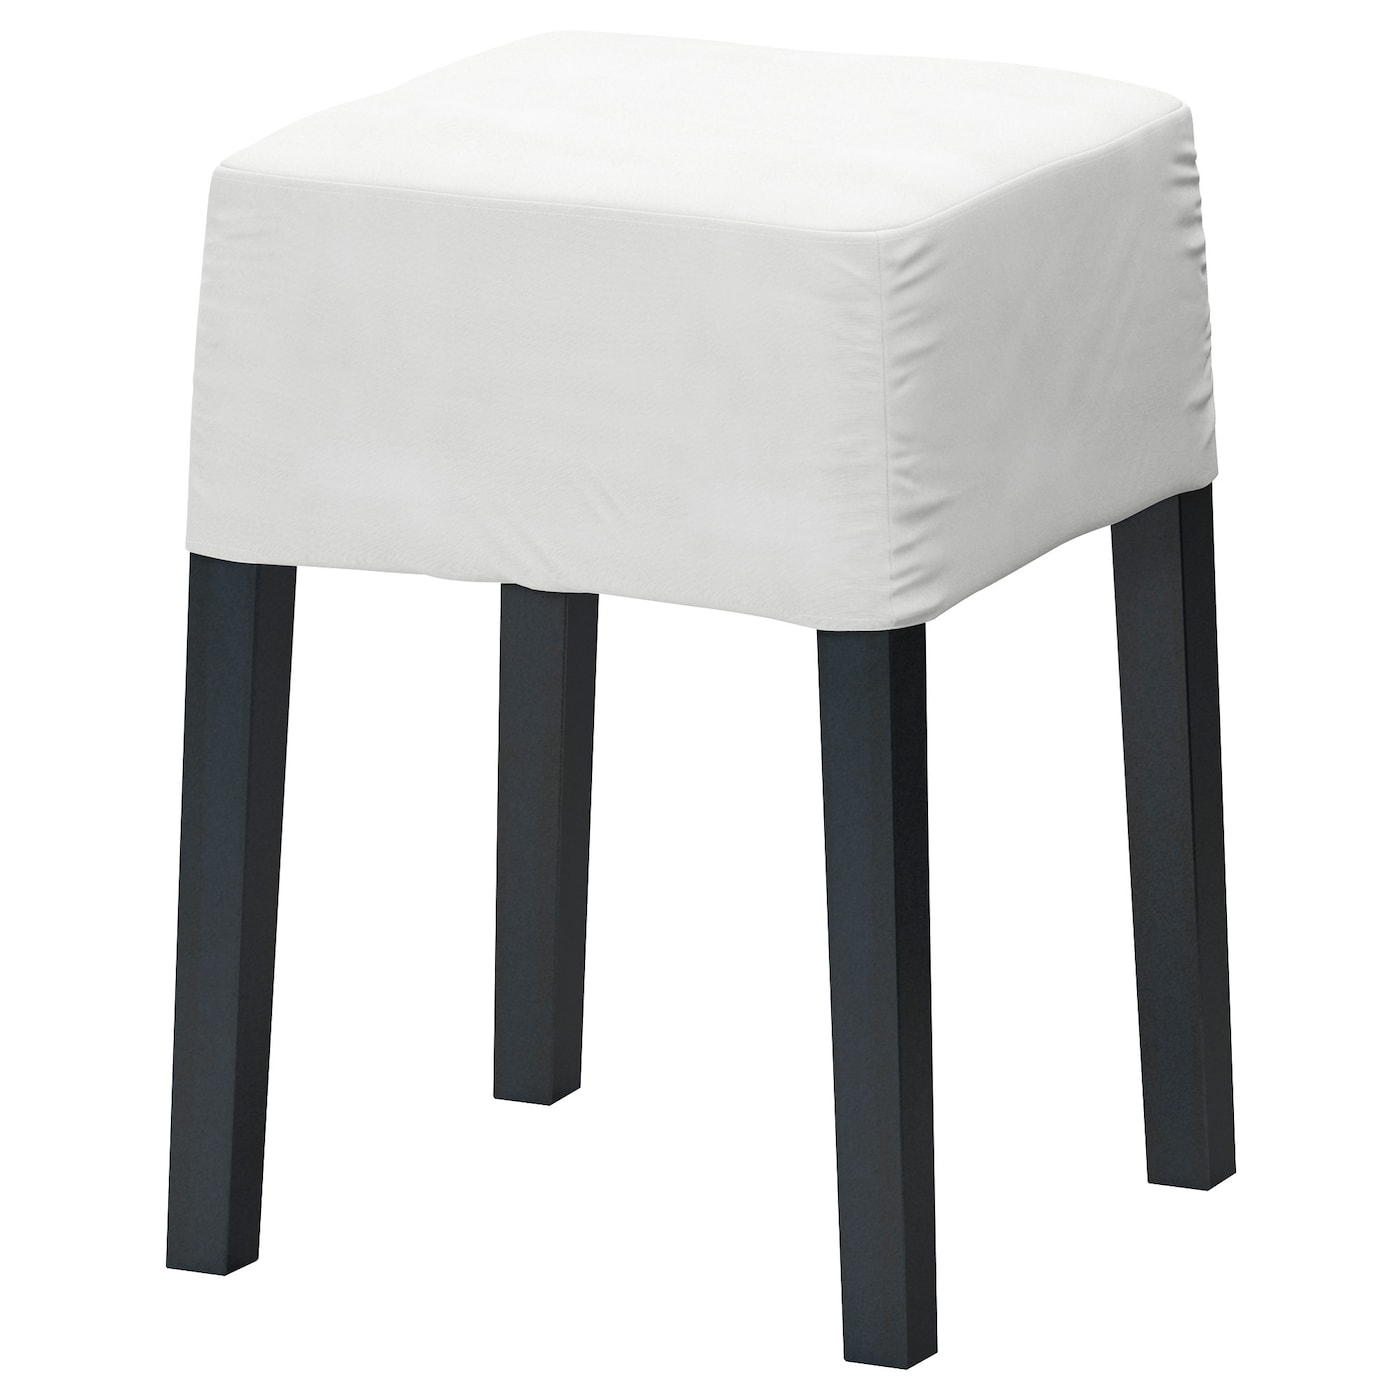 IKEA NILS stool frame The padded seat means you sit comfortably.